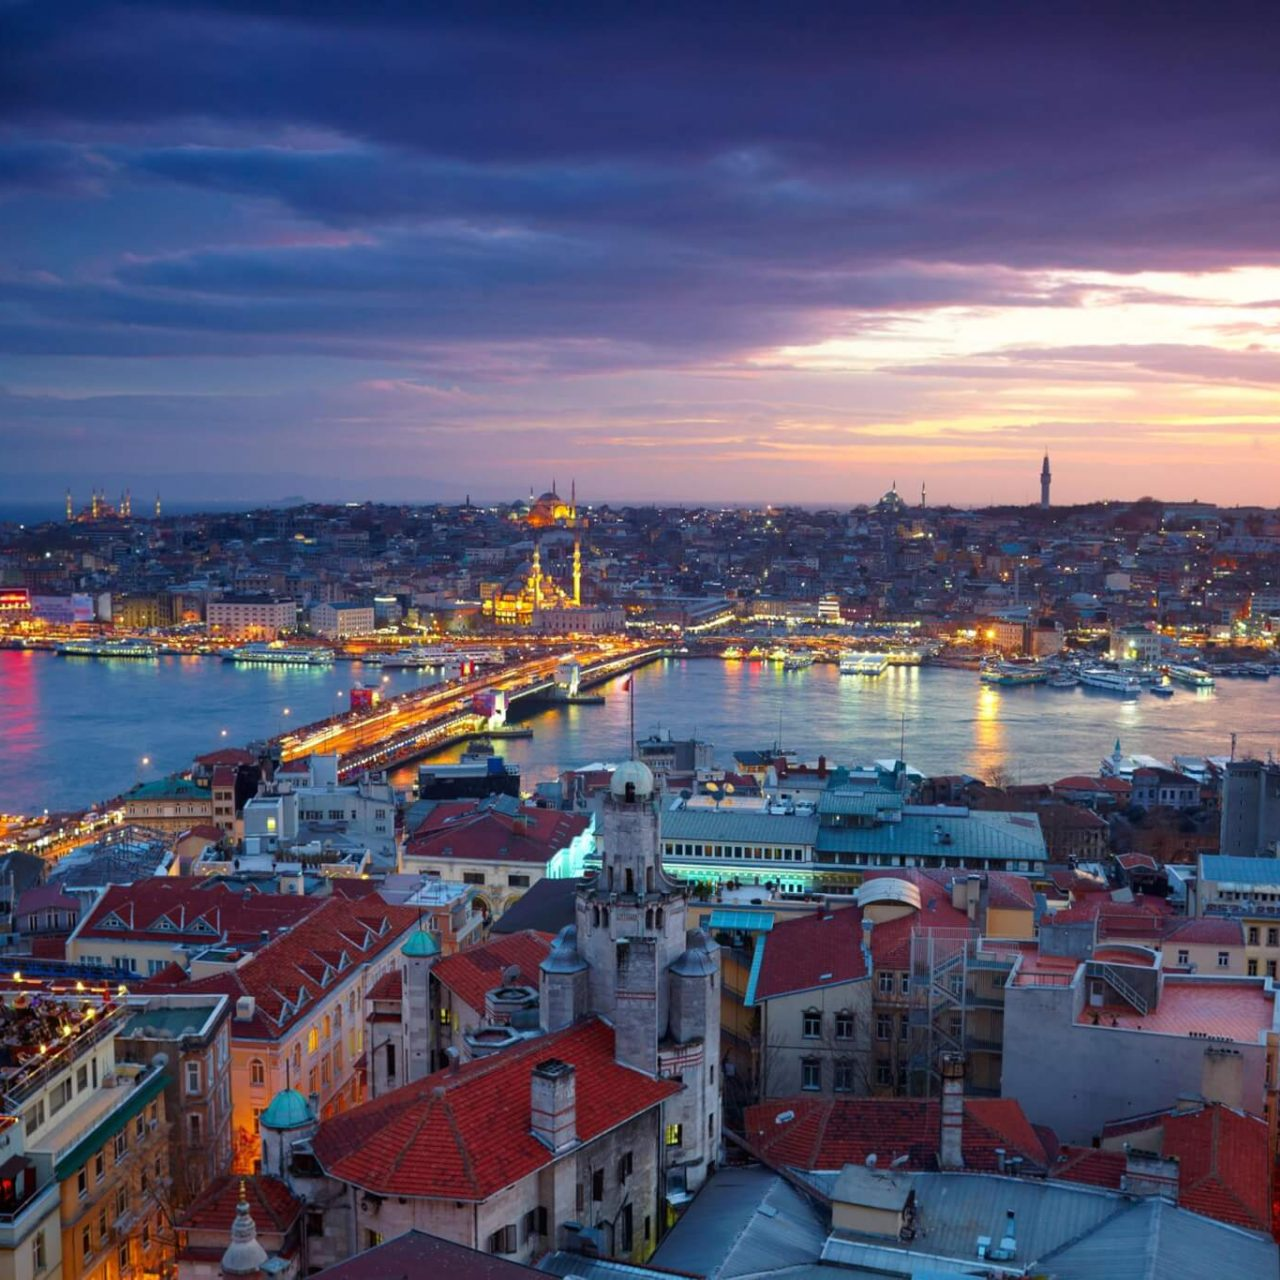 https://travelicious.bold-themes.com/main-demo/wp-content/uploads/sites/2/2018/09/destination-istanbul-01-1280x1280.jpg